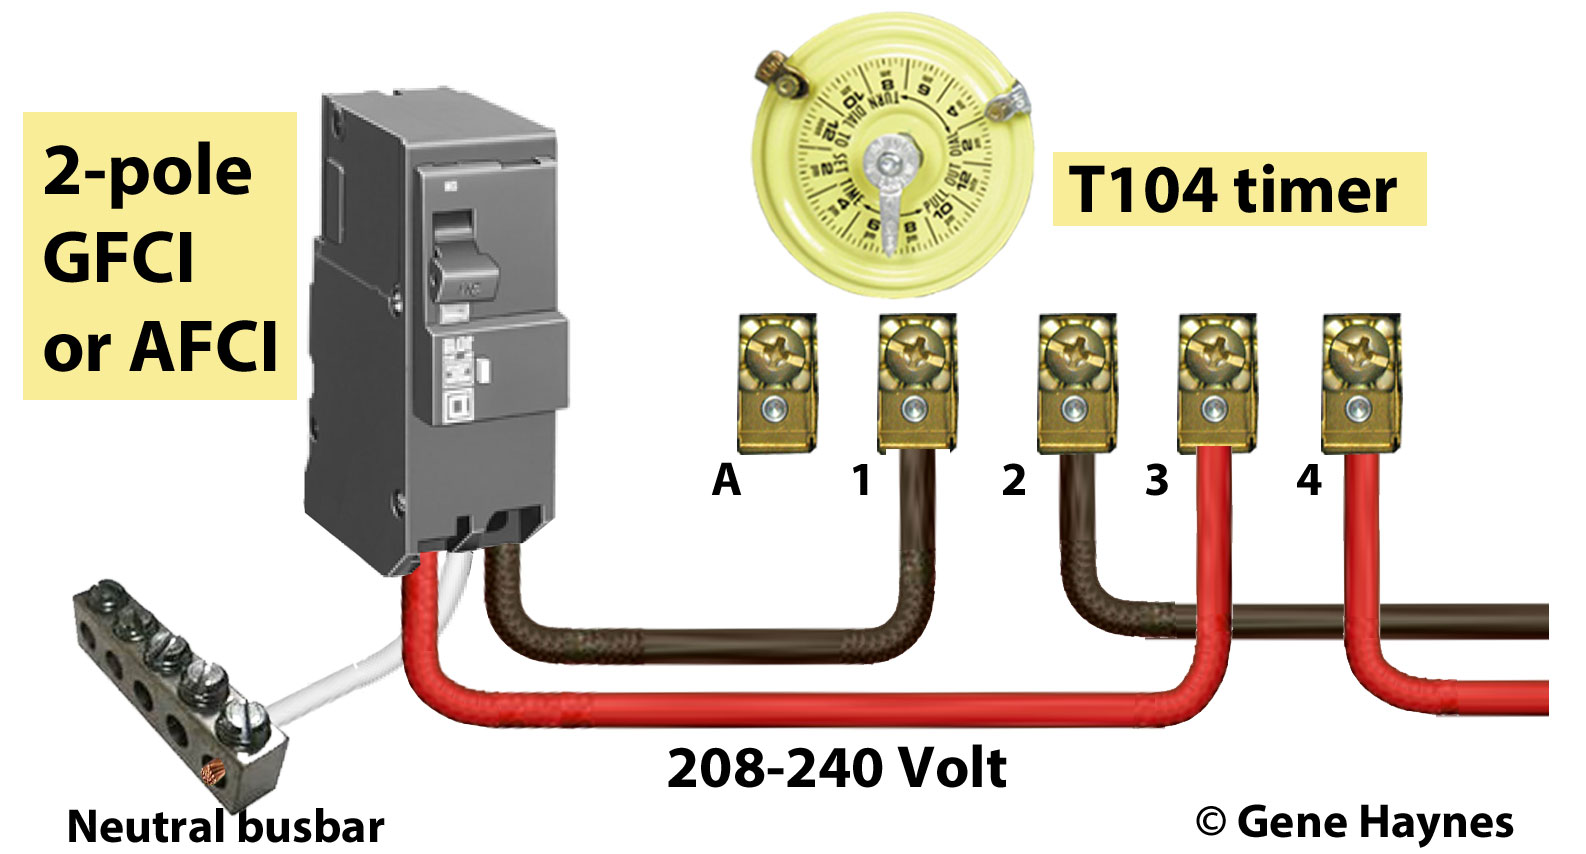 GFCI 2 pole breaker 800 how to install and troubleshoot gfci 240 volt gfci breaker wiring diagram at aneh.co